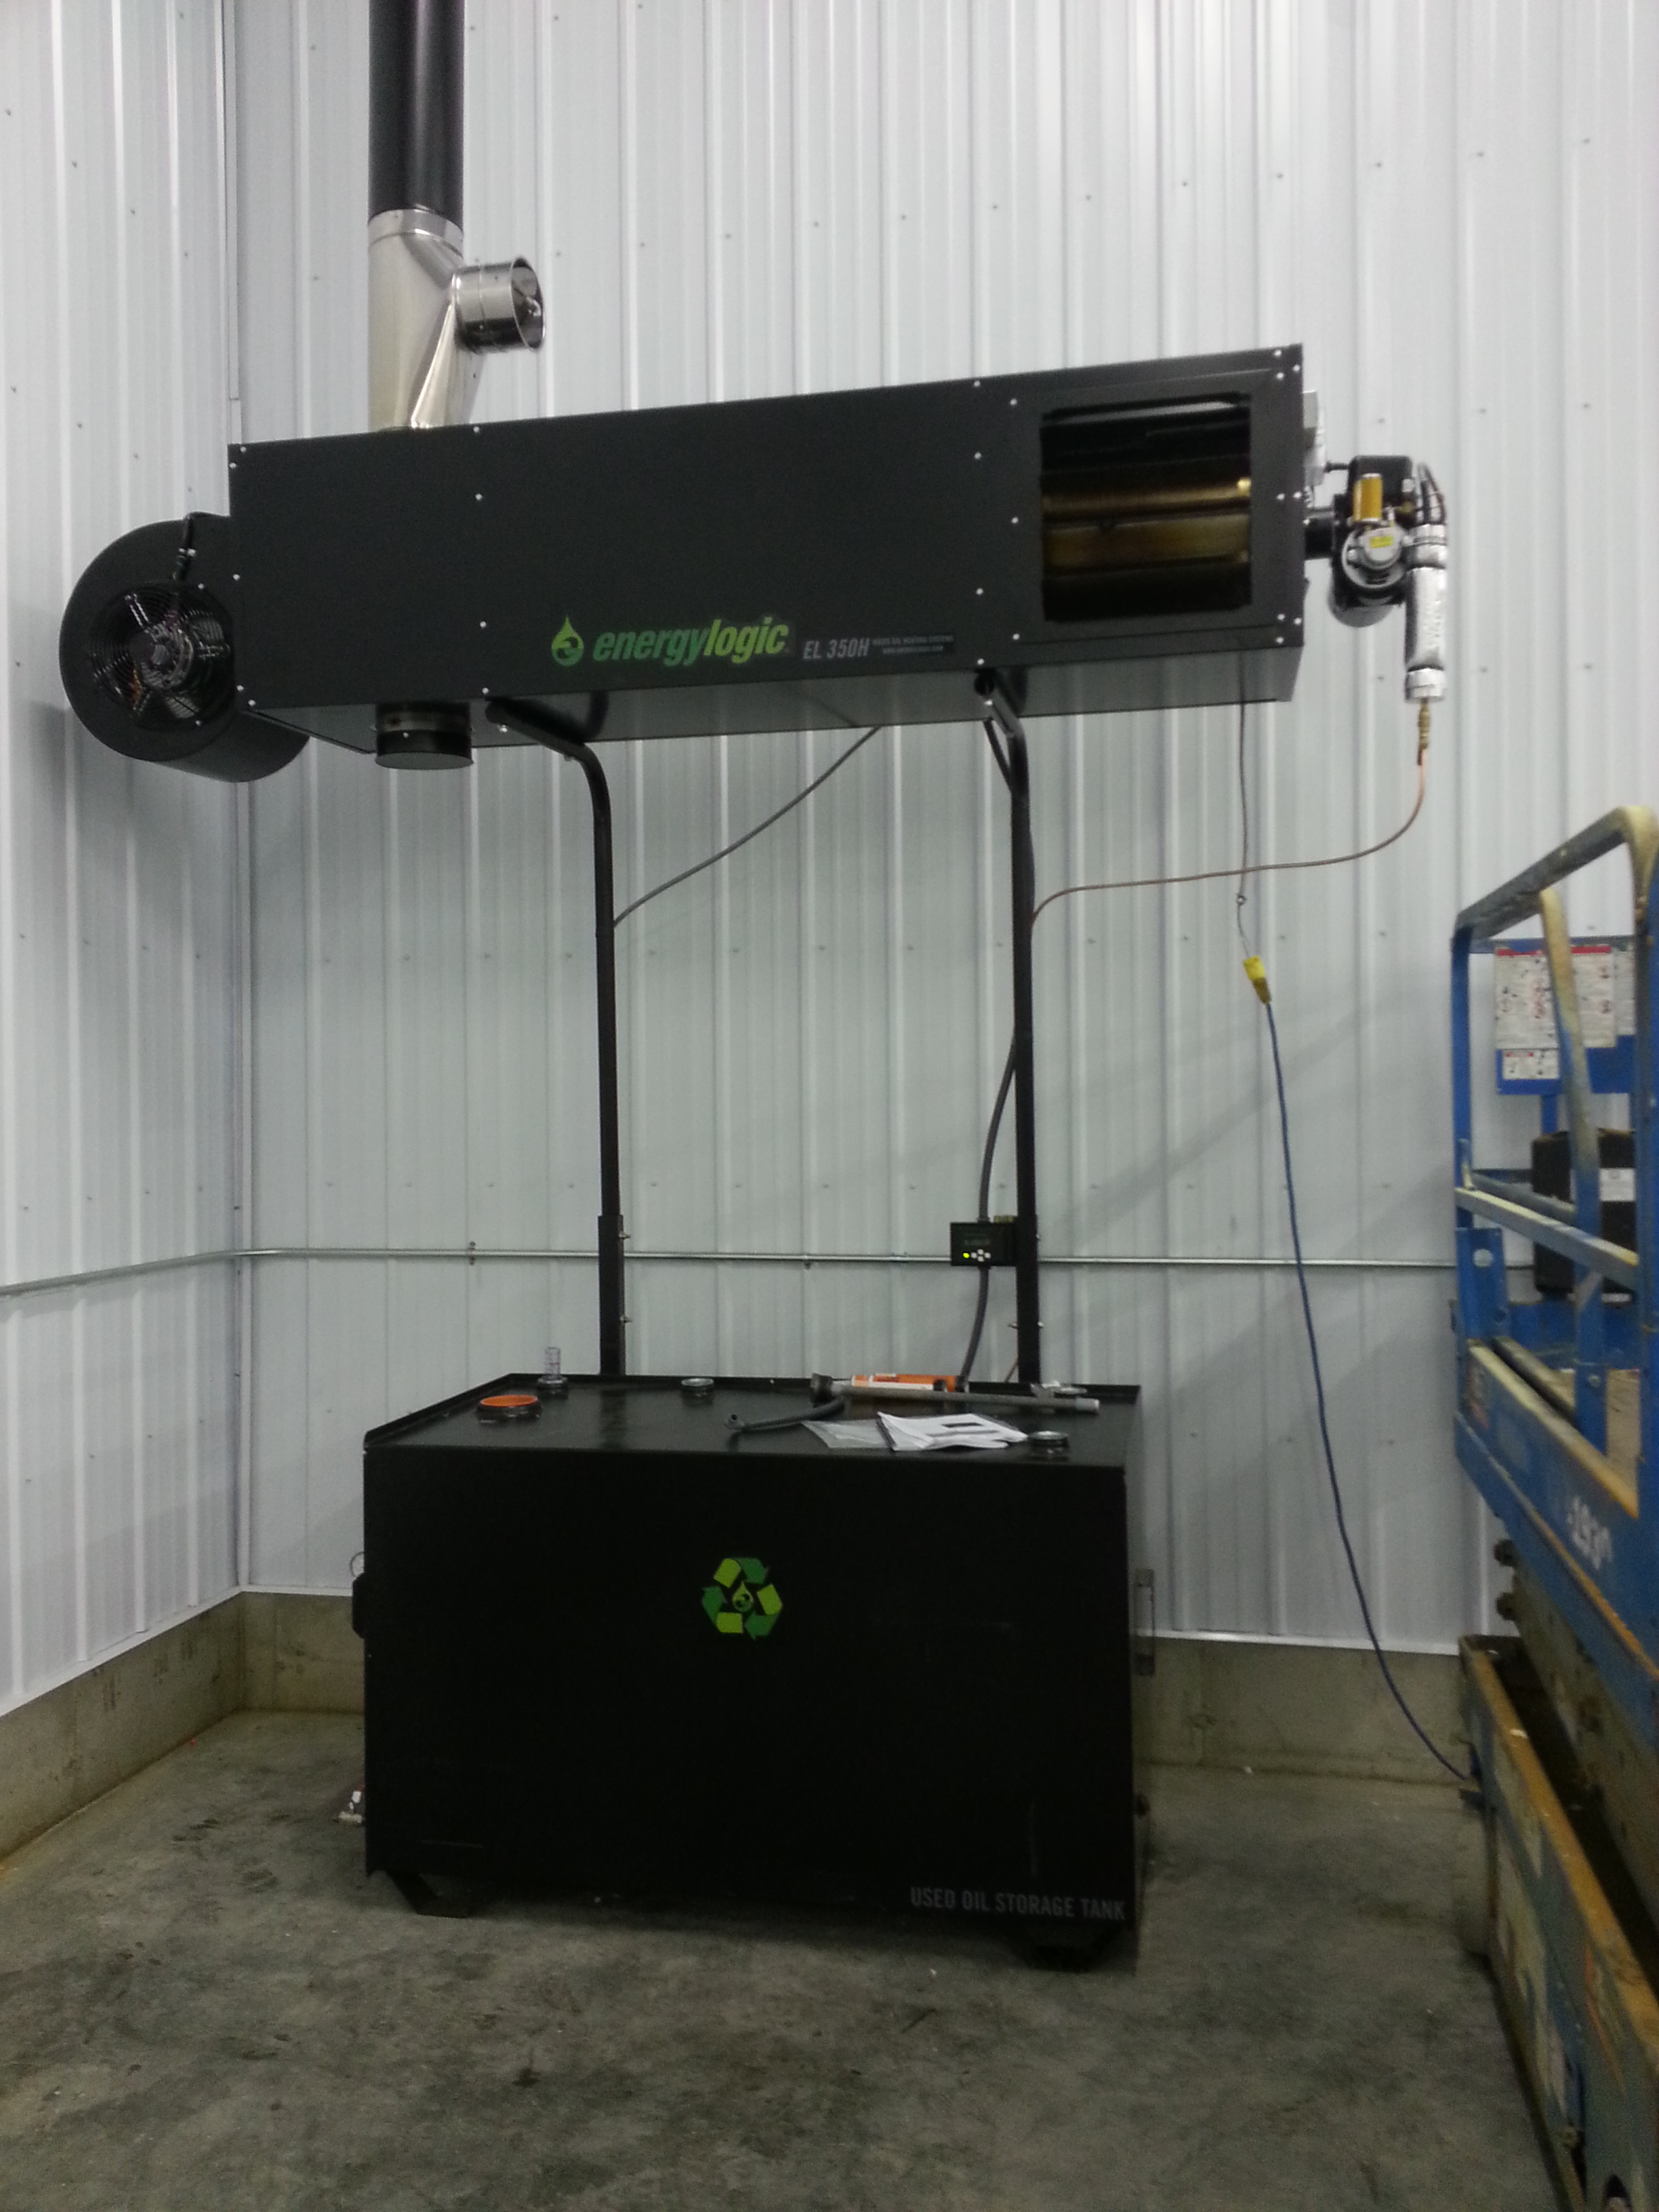 Garage Heater Craigslist Waste Oil Heaters Superior Water And Energy